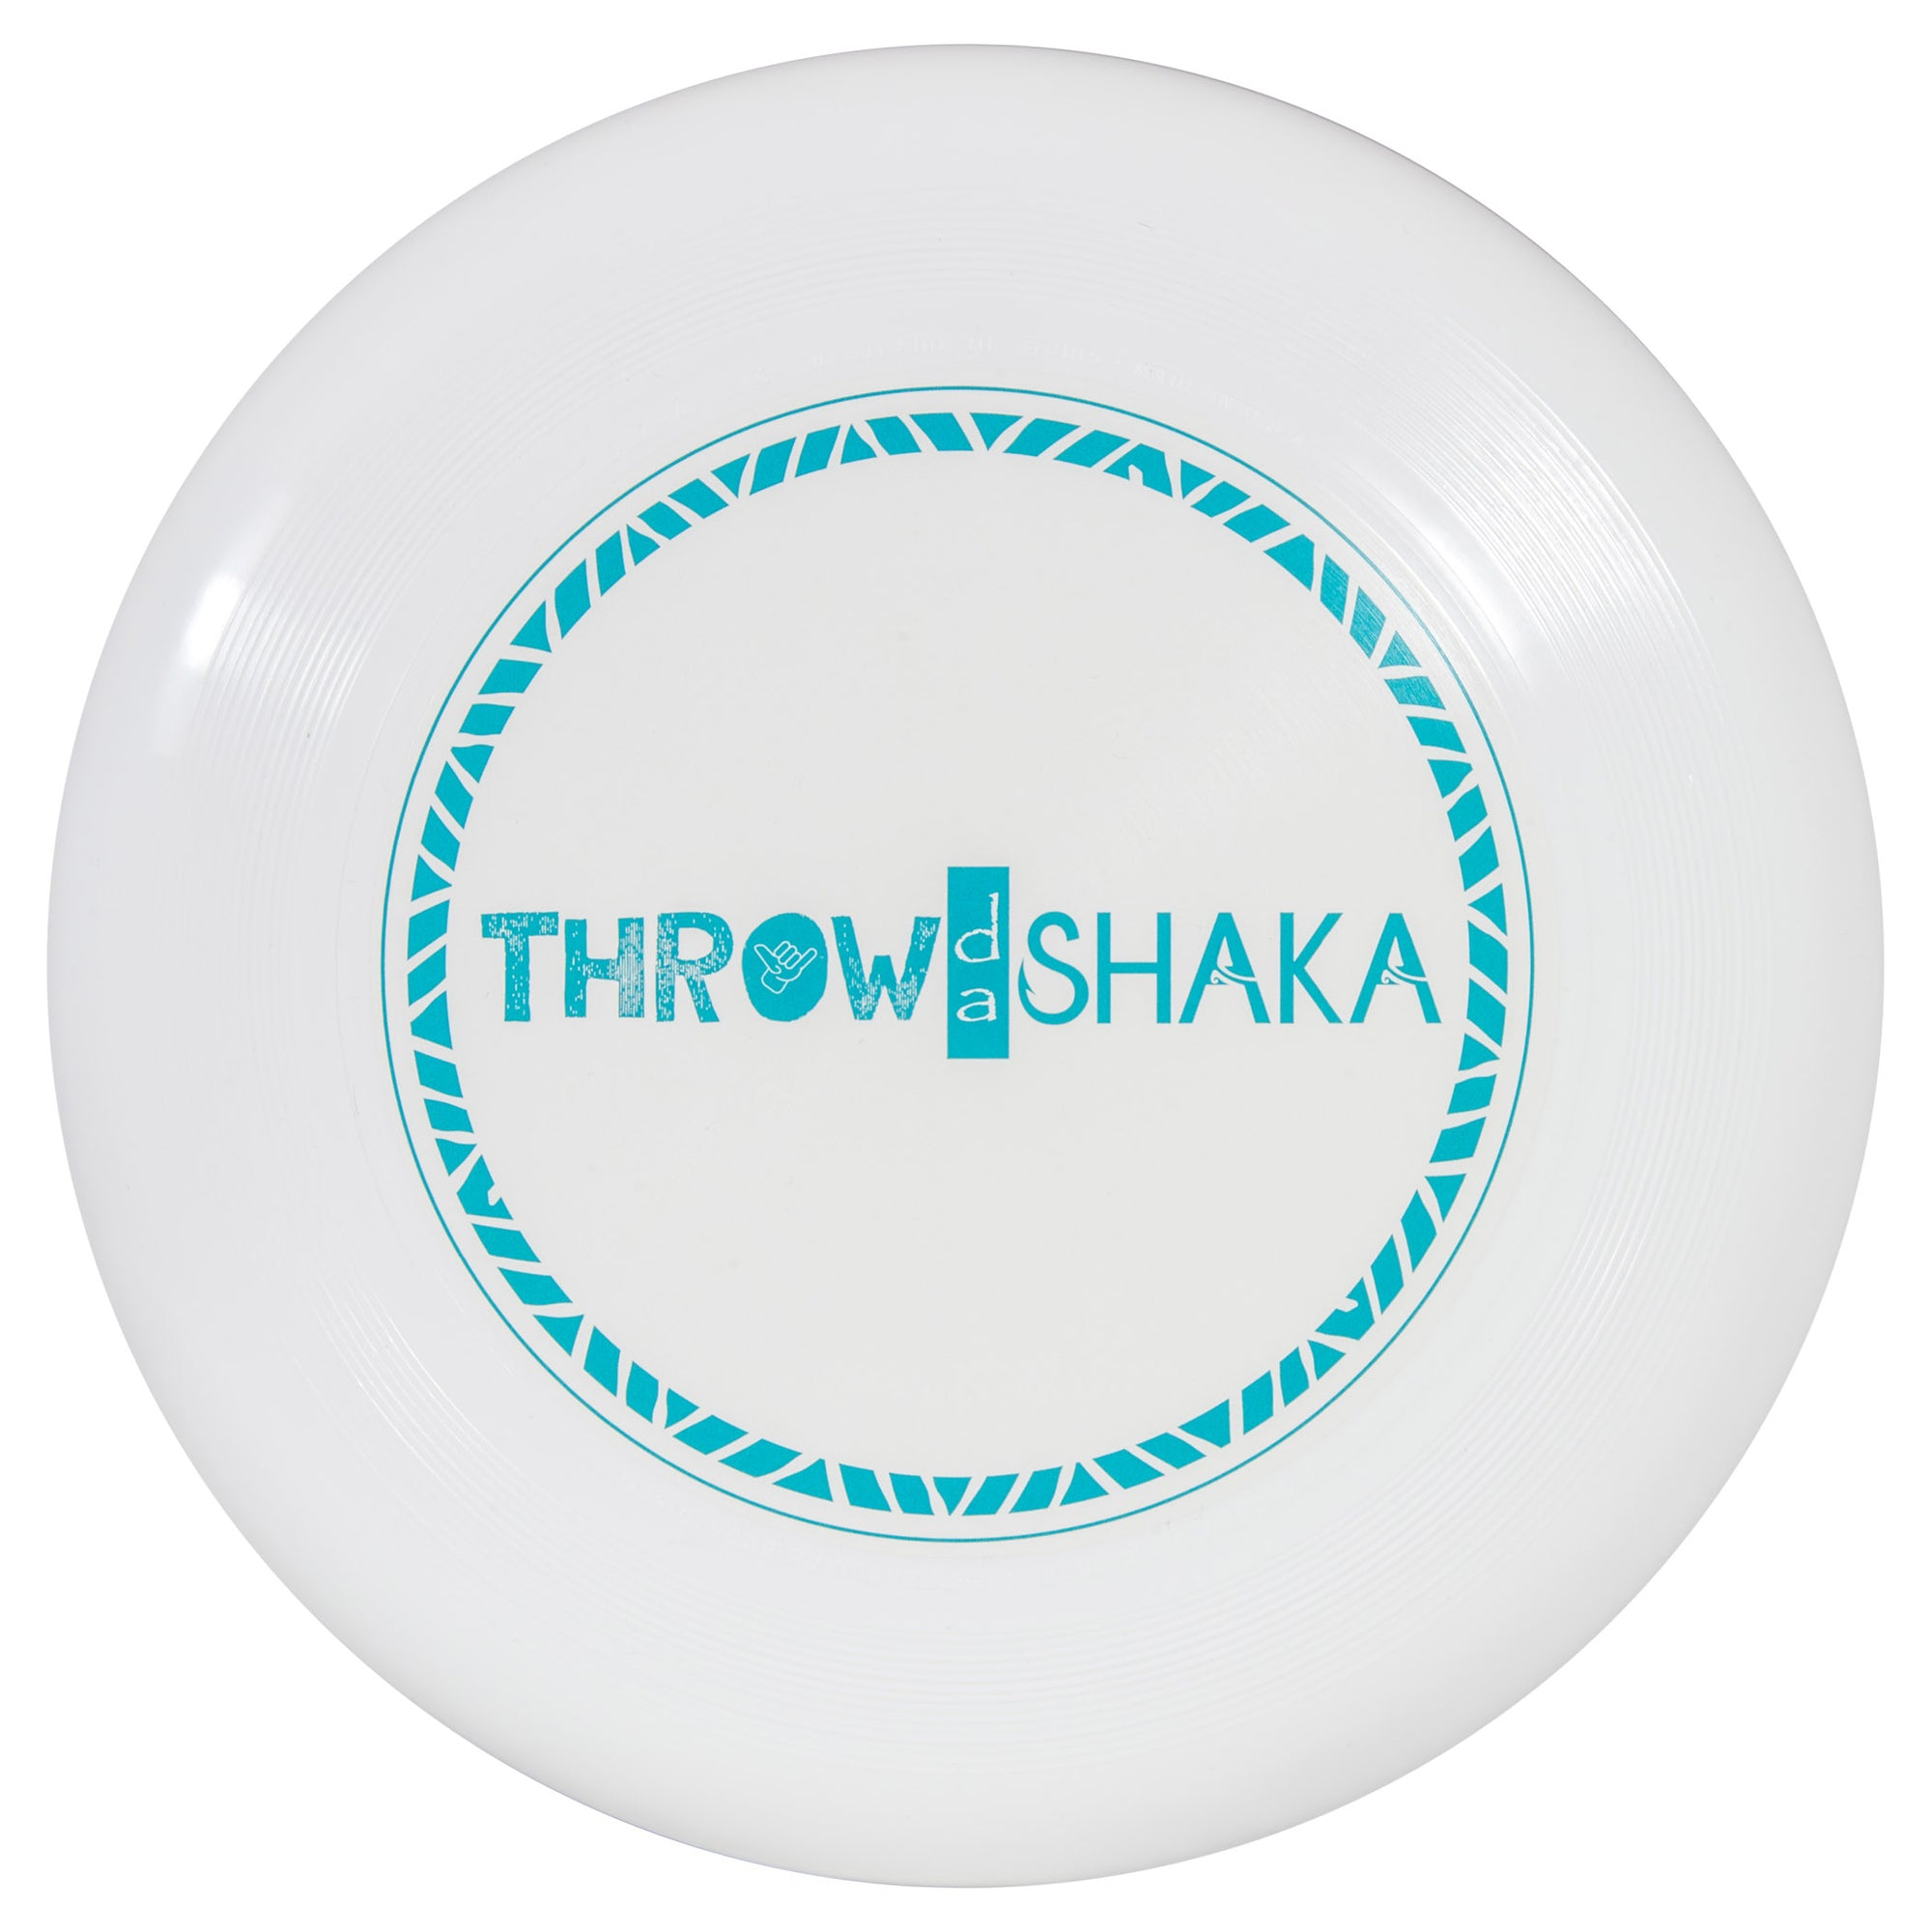 Throwdashaka